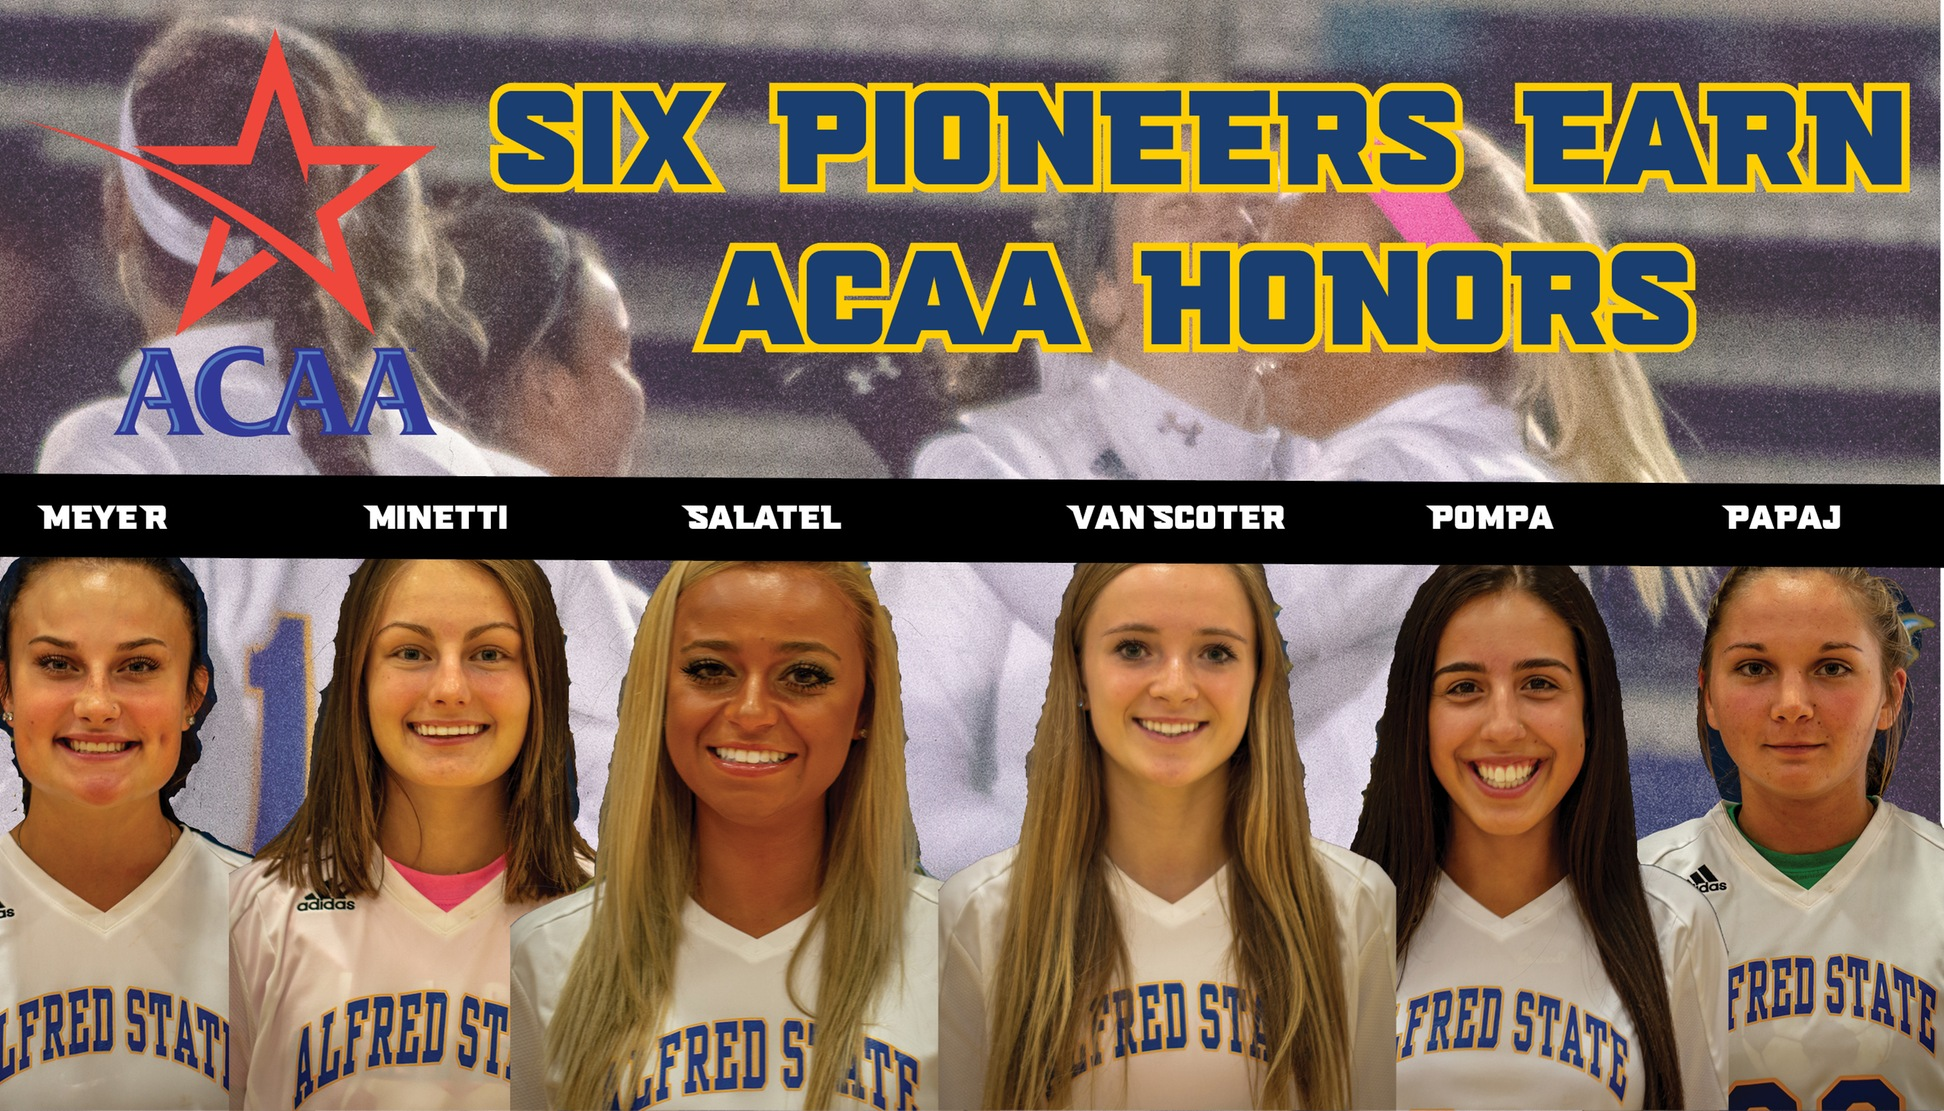 Six Pioneers named All-ACAA